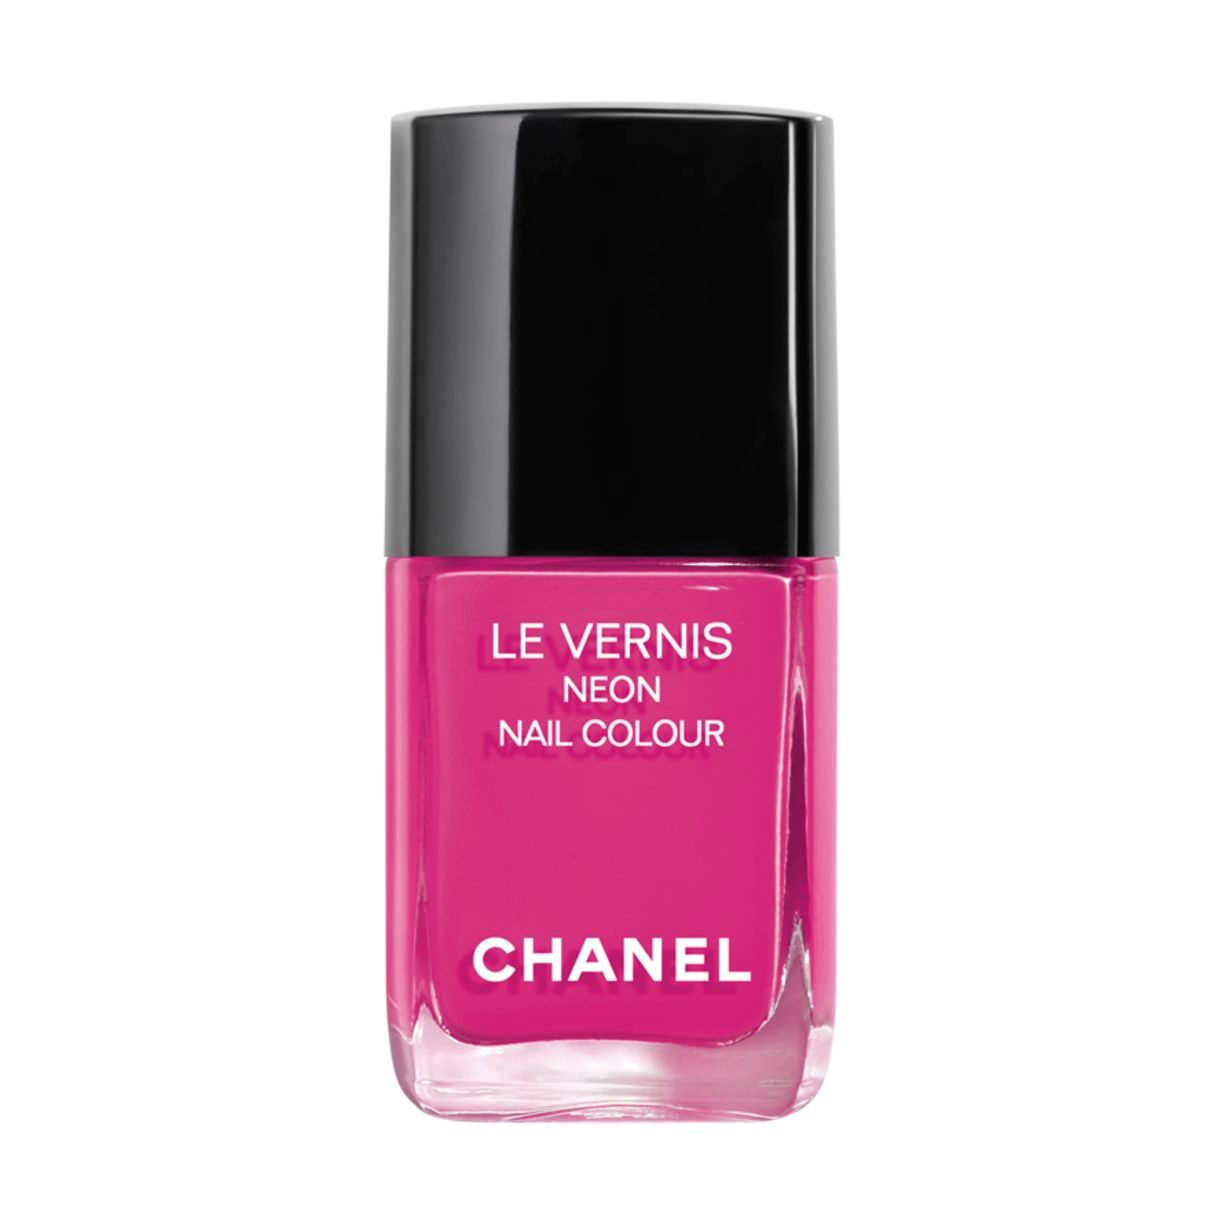 LE VERNIS NEON NAIL COLOUR ESMALTE NEON 648 - TECHNO BLOOM